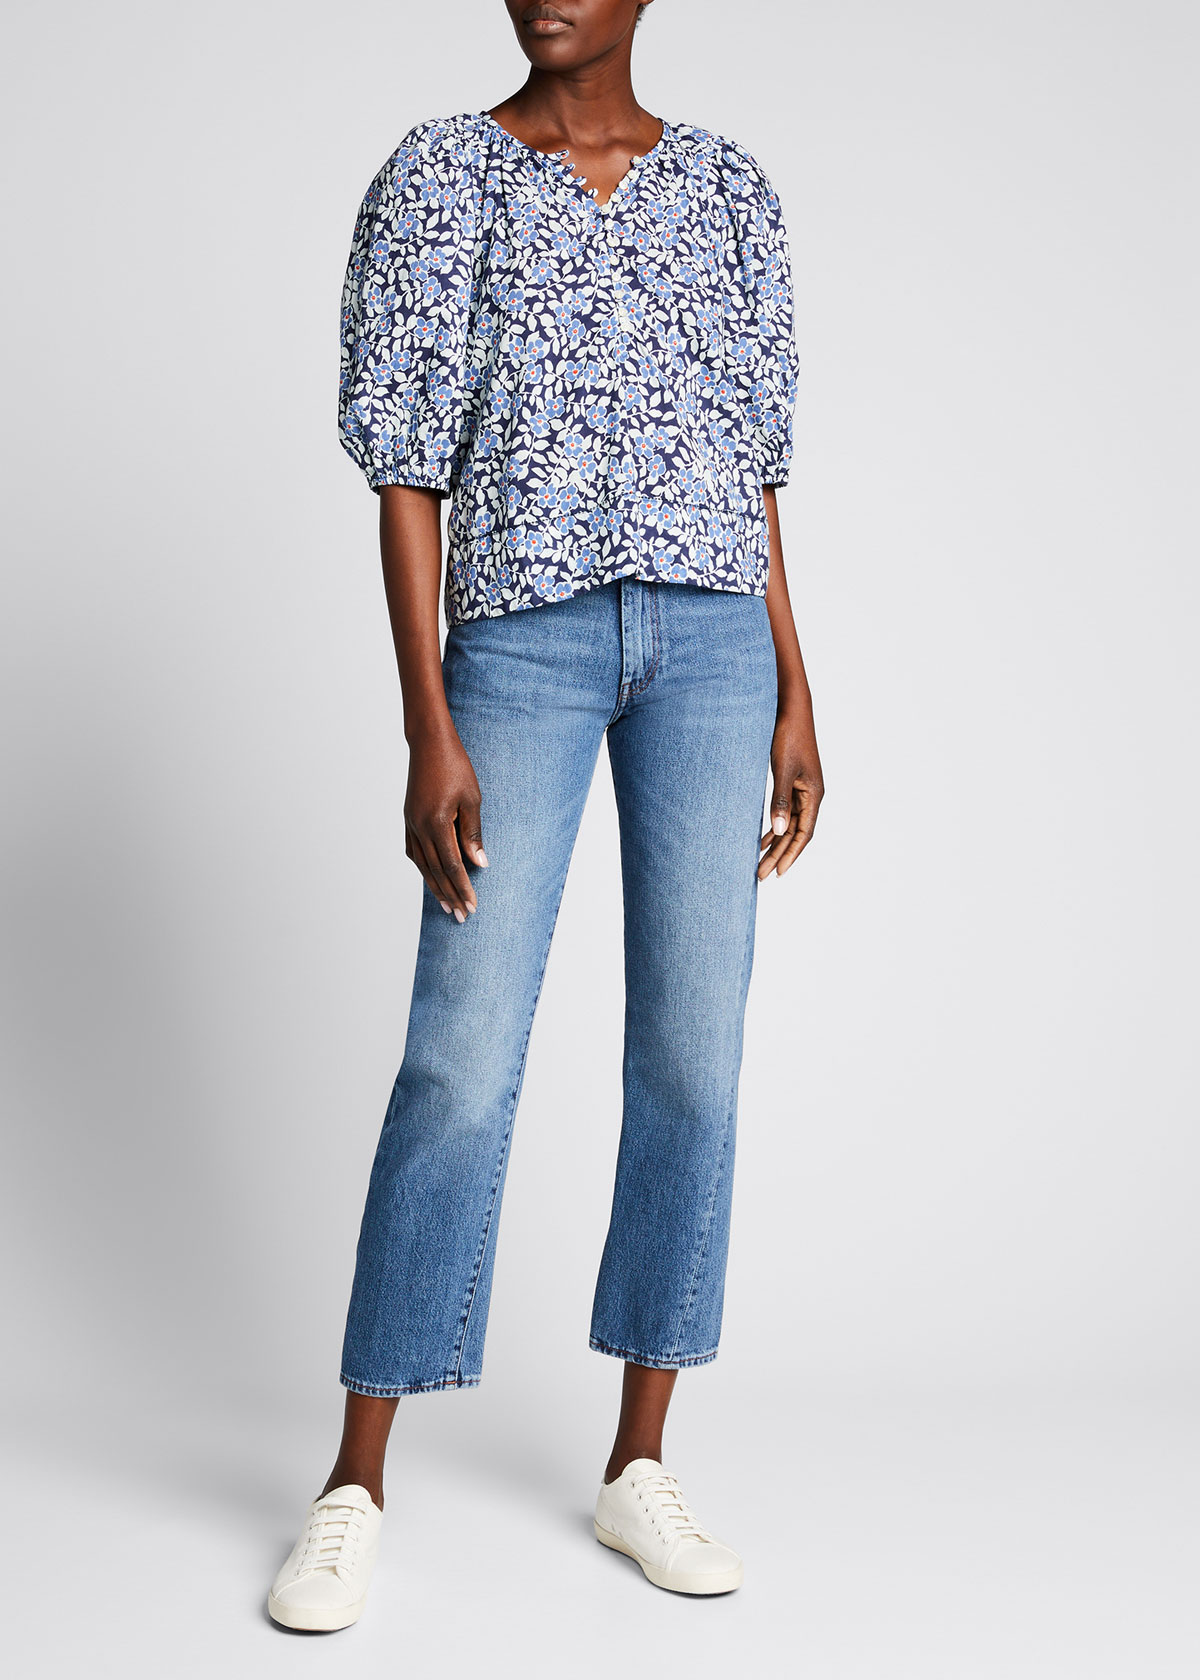 The Great THE RAVINE FLORAL-PRINT PUFF-SLEEVE TOP